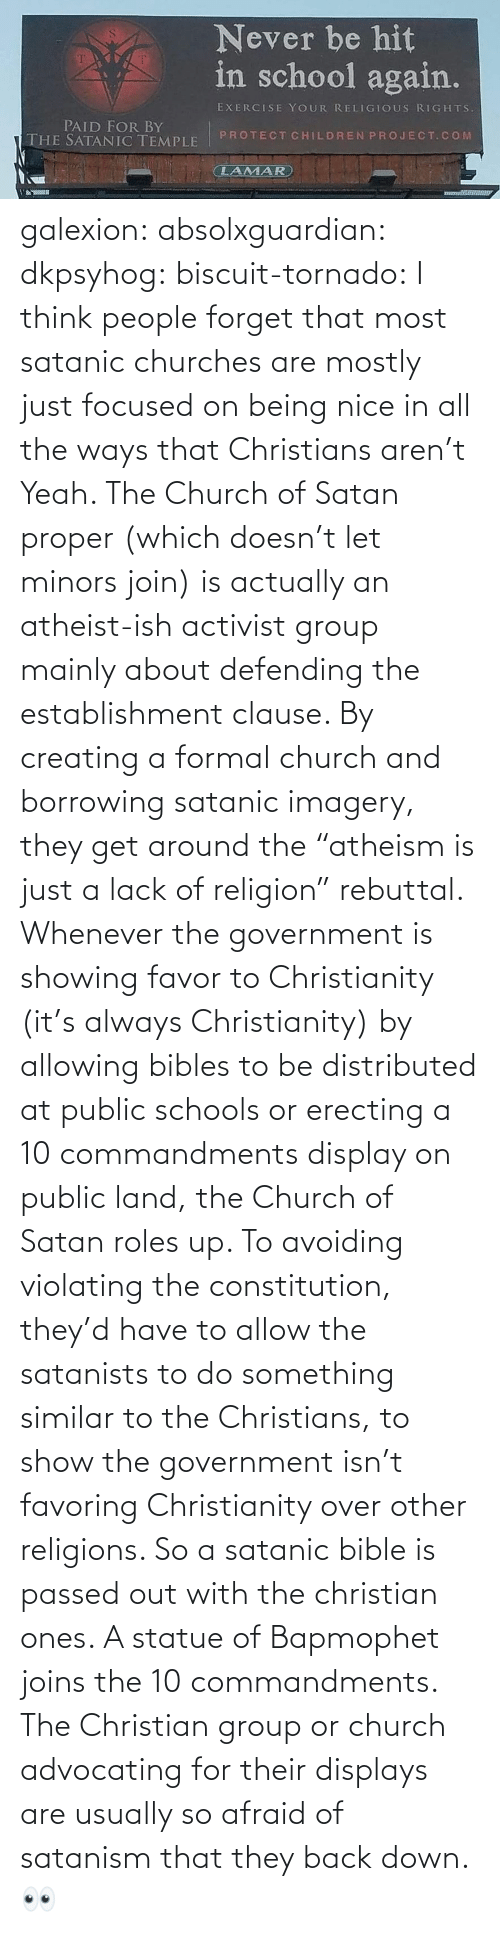 "public: galexion:  absolxguardian:  dkpsyhog:  biscuit-tornado:     I think people forget that most satanic churches are mostly just focused on being nice in all the ways that Christians aren't  Yeah. The Church of Satan proper (which doesn't let minors join) is actually an atheist-ish activist group mainly about defending the establishment clause. By creating a formal church and borrowing satanic imagery, they get around the ""atheism is just a lack of religion"" rebuttal. Whenever the government is showing favor to Christianity (it's always Christianity) by allowing bibles to be distributed at public schools or erecting a 10 commandments display on public land, the Church of Satan roles up. To avoiding violating the constitution, they'd have to allow the satanists to do something similar to the Christians, to show the government isn't favoring Christianity over other religions. So a satanic bible is passed out with the christian ones. A statue of Bapmophet joins the 10 commandments. The Christian group or church advocating for their displays are usually so afraid of satanism that they back down.   👀"